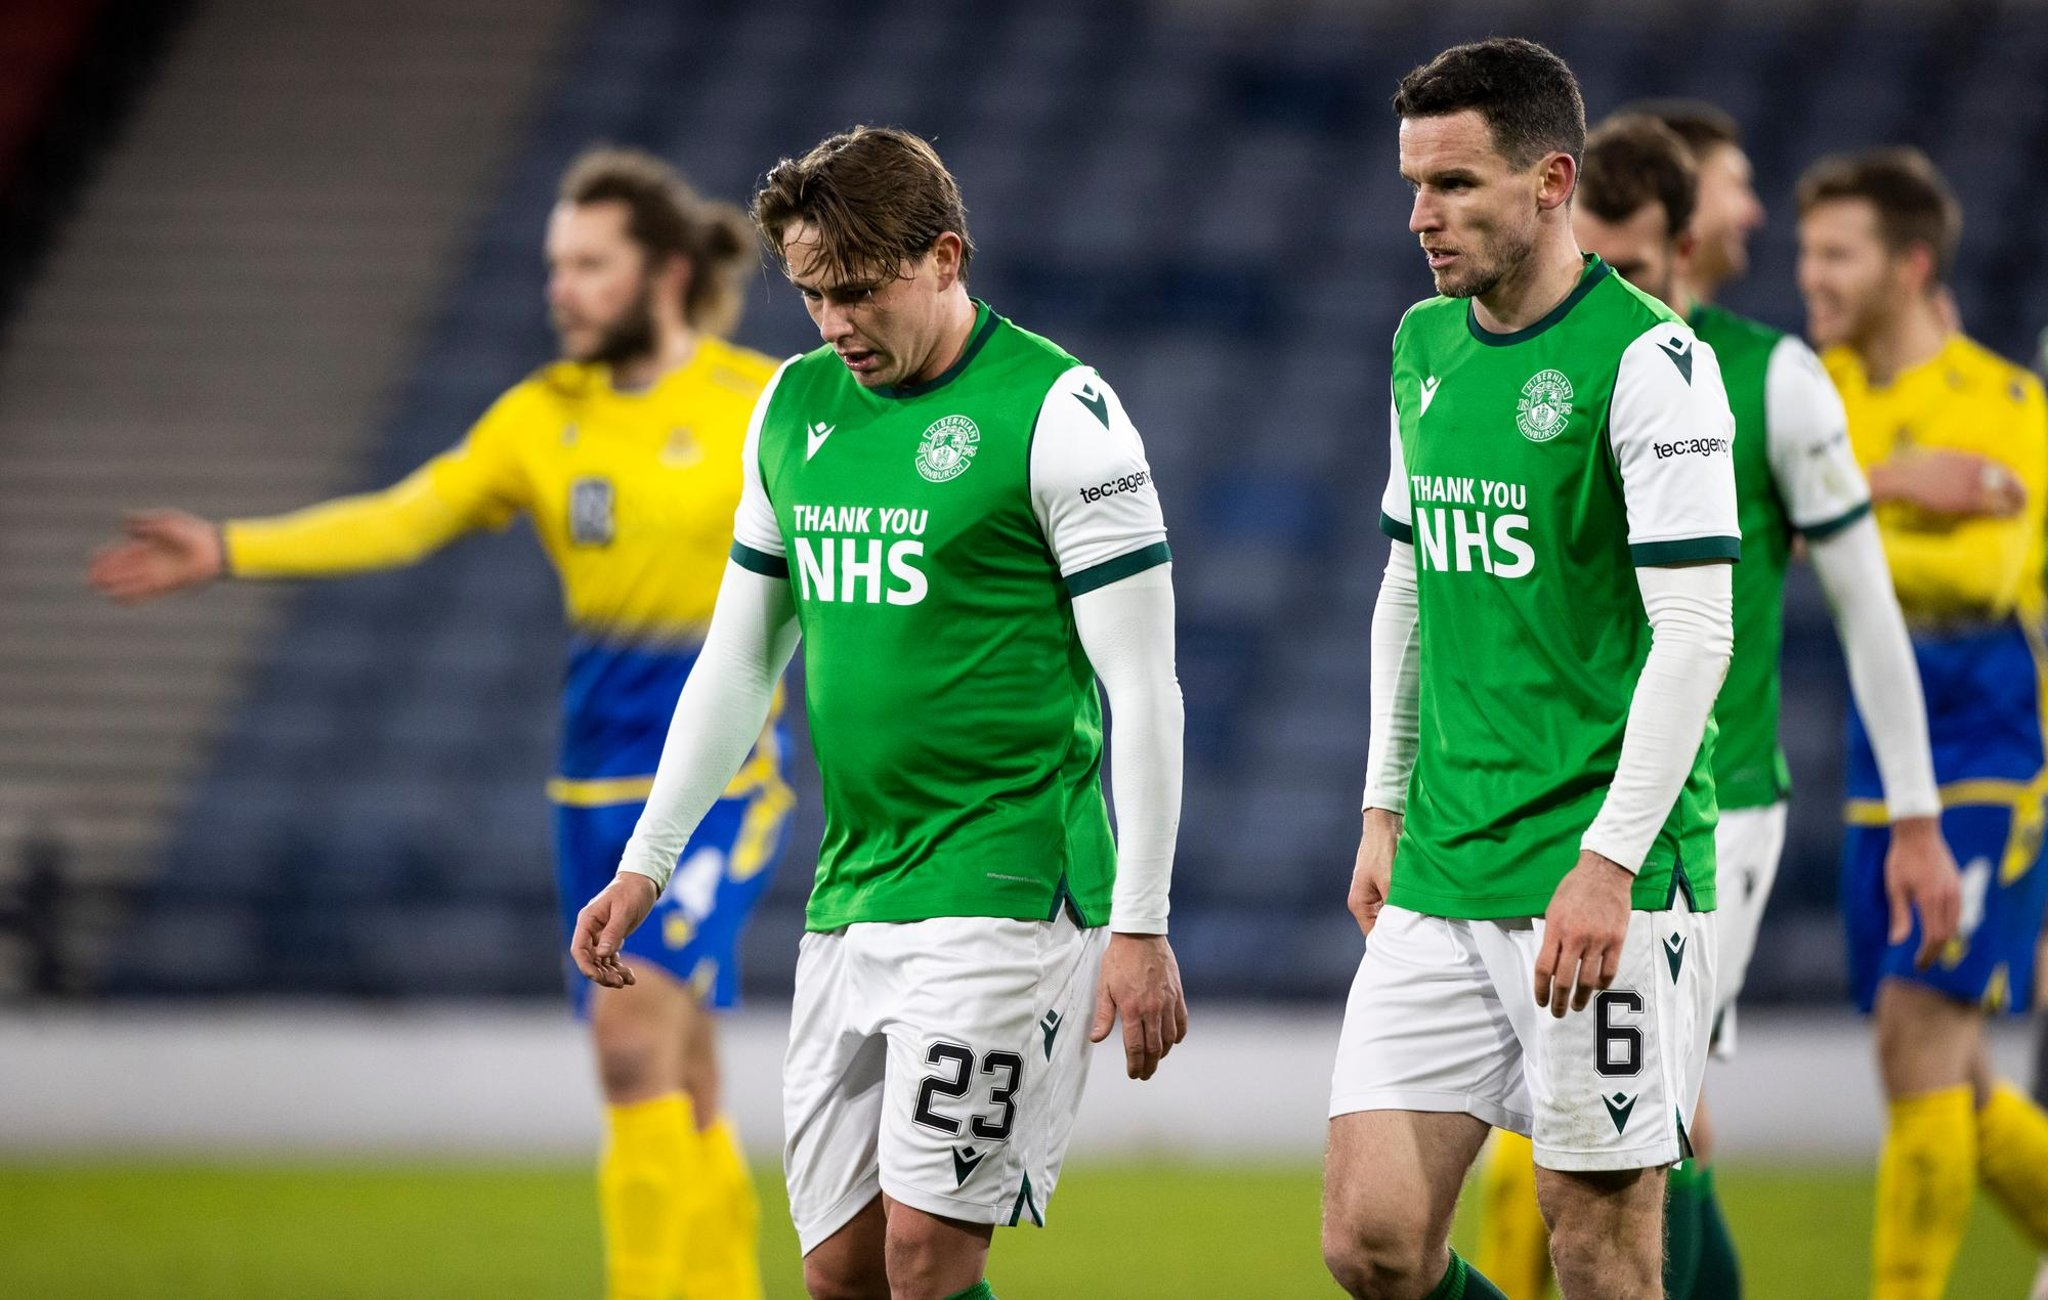 'Lottery-style team and tactics each week'; 'Not surprised just disappointed' - Hibs fans react to grim Hampden loss